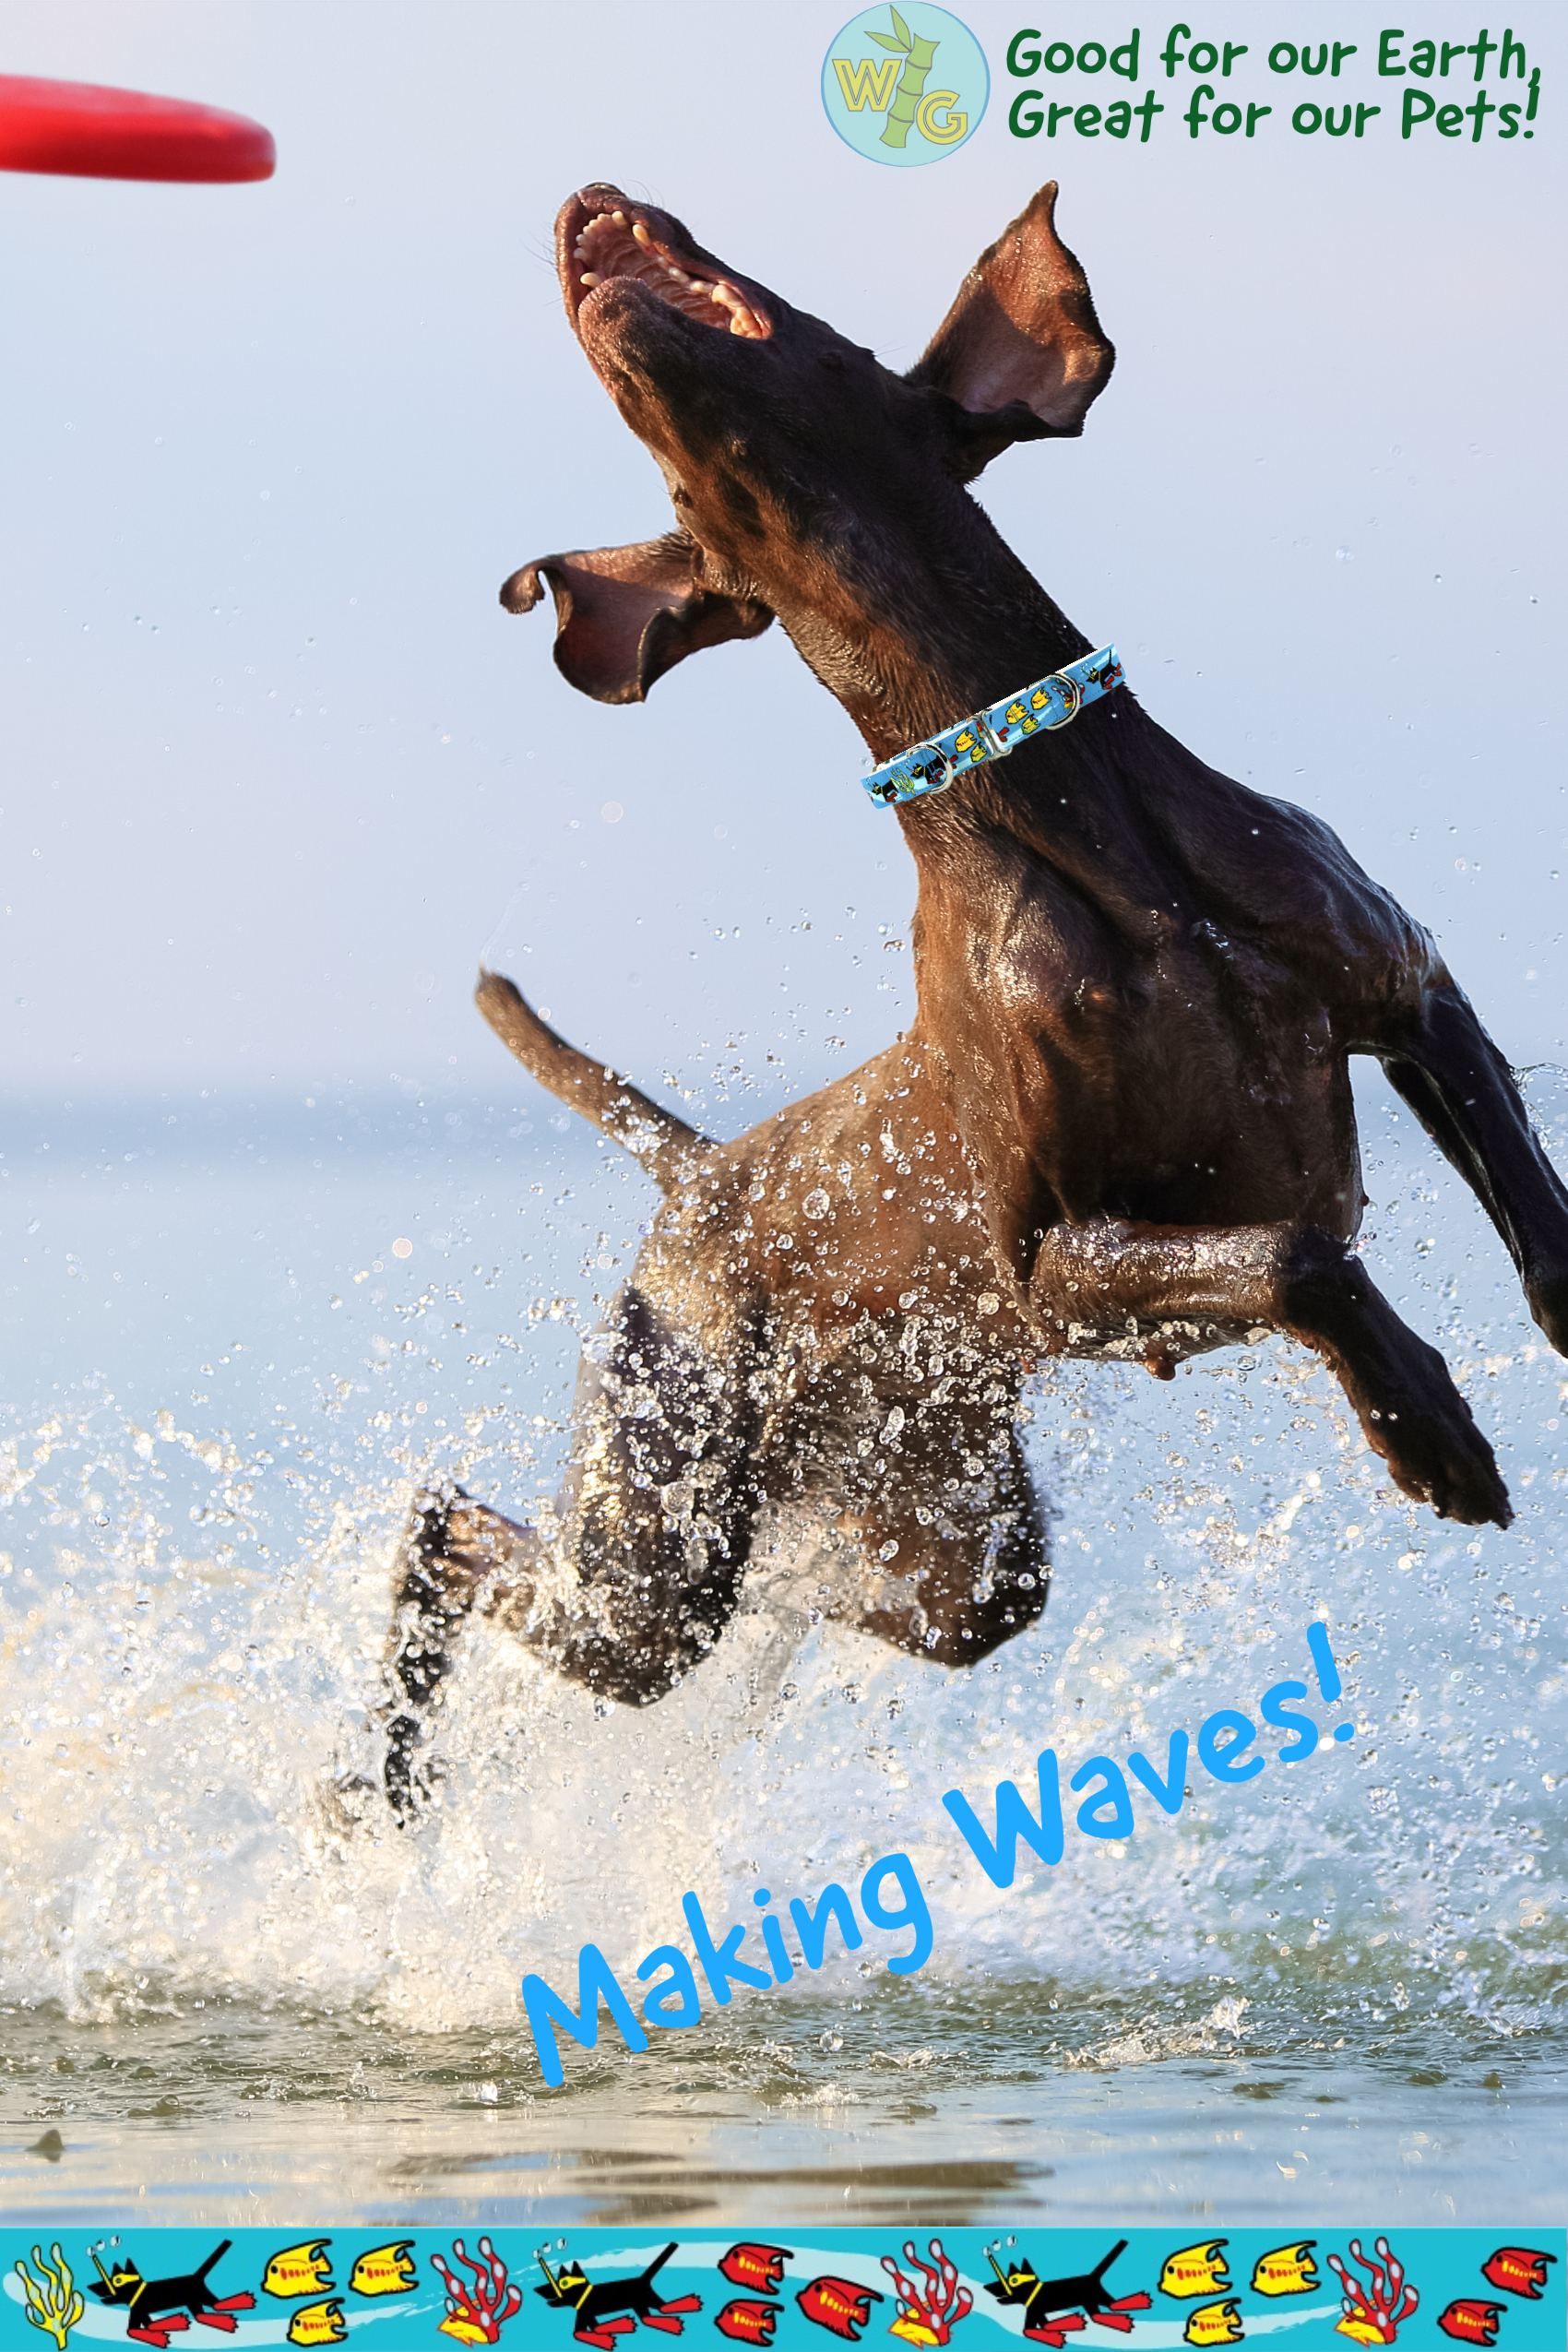 Dog in ocean jumping to catch red frisbee while wearing a Making Waves dog collar